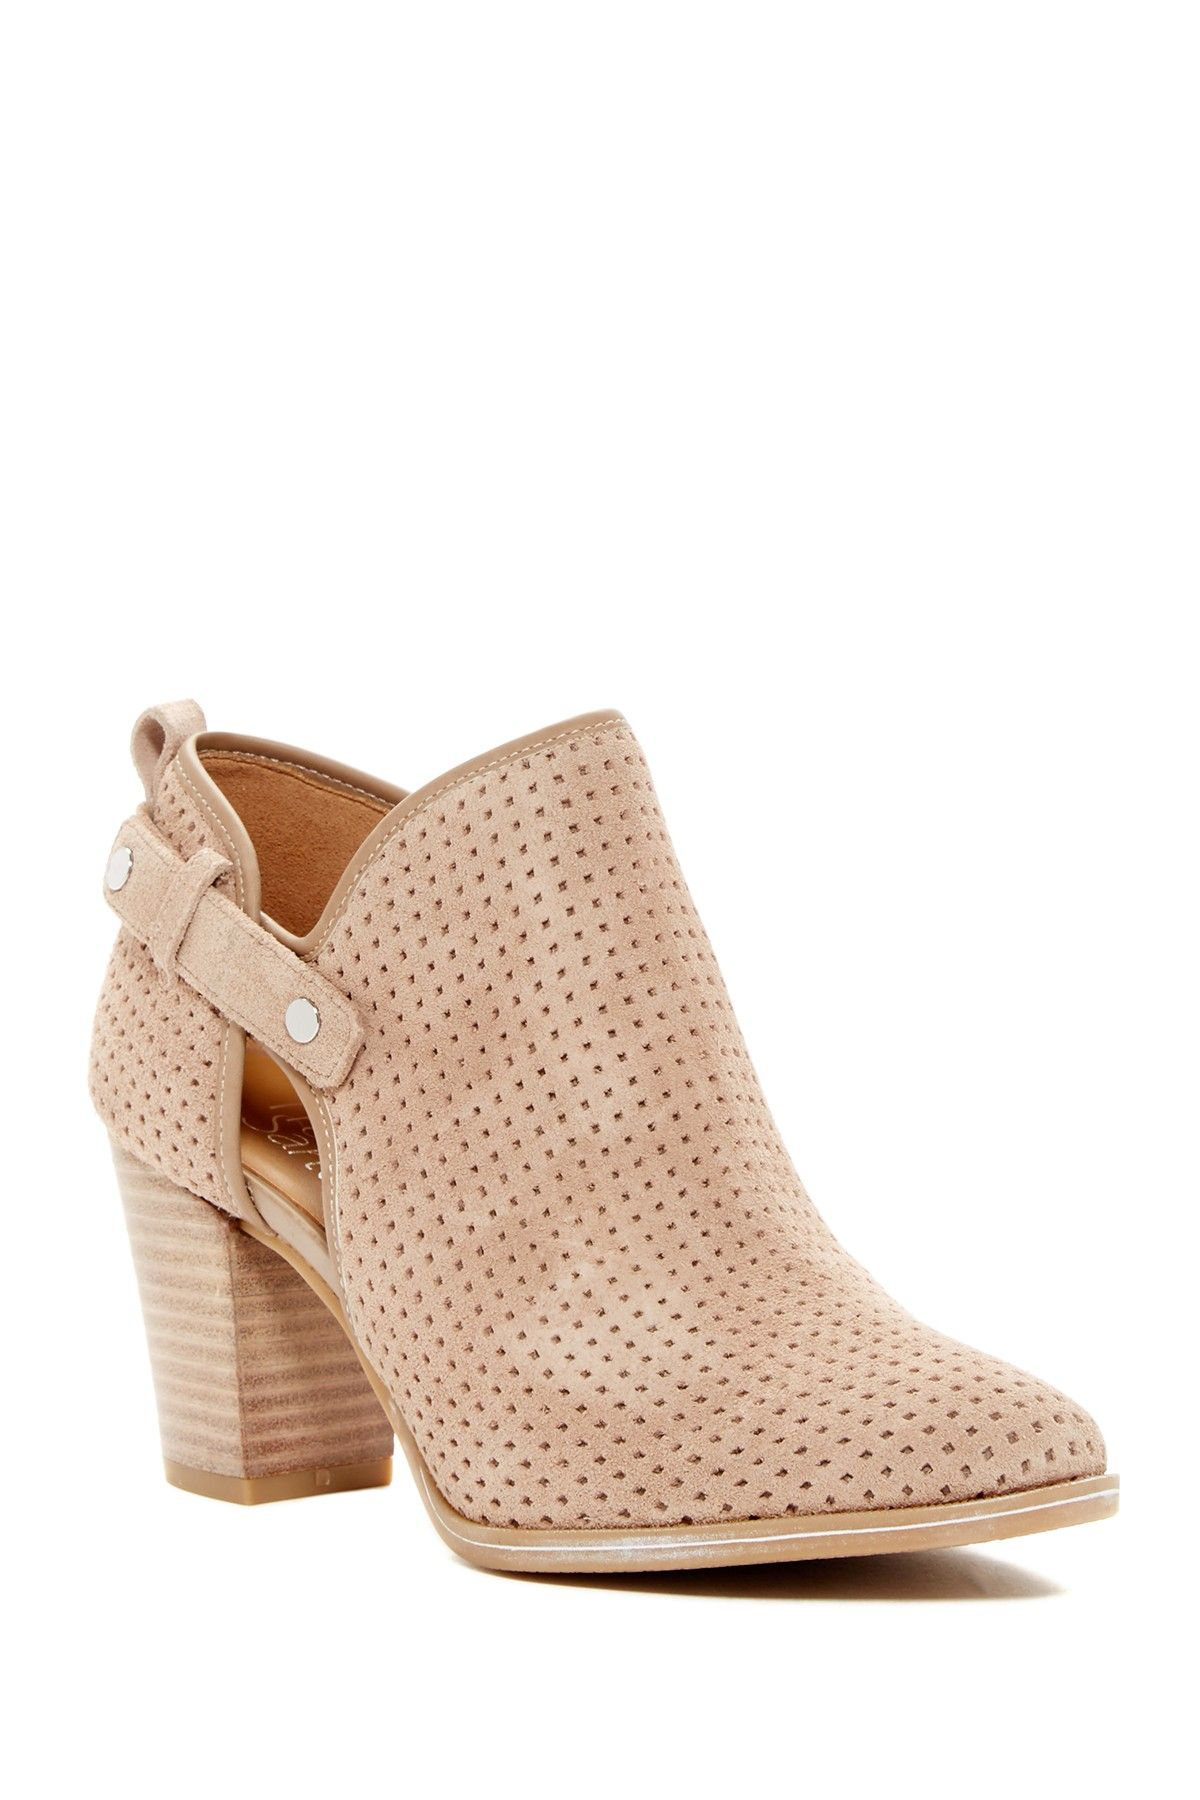 0a4cfb94a Dakota Perforated Bootie | Products | Franco sarto, Boots, Booty